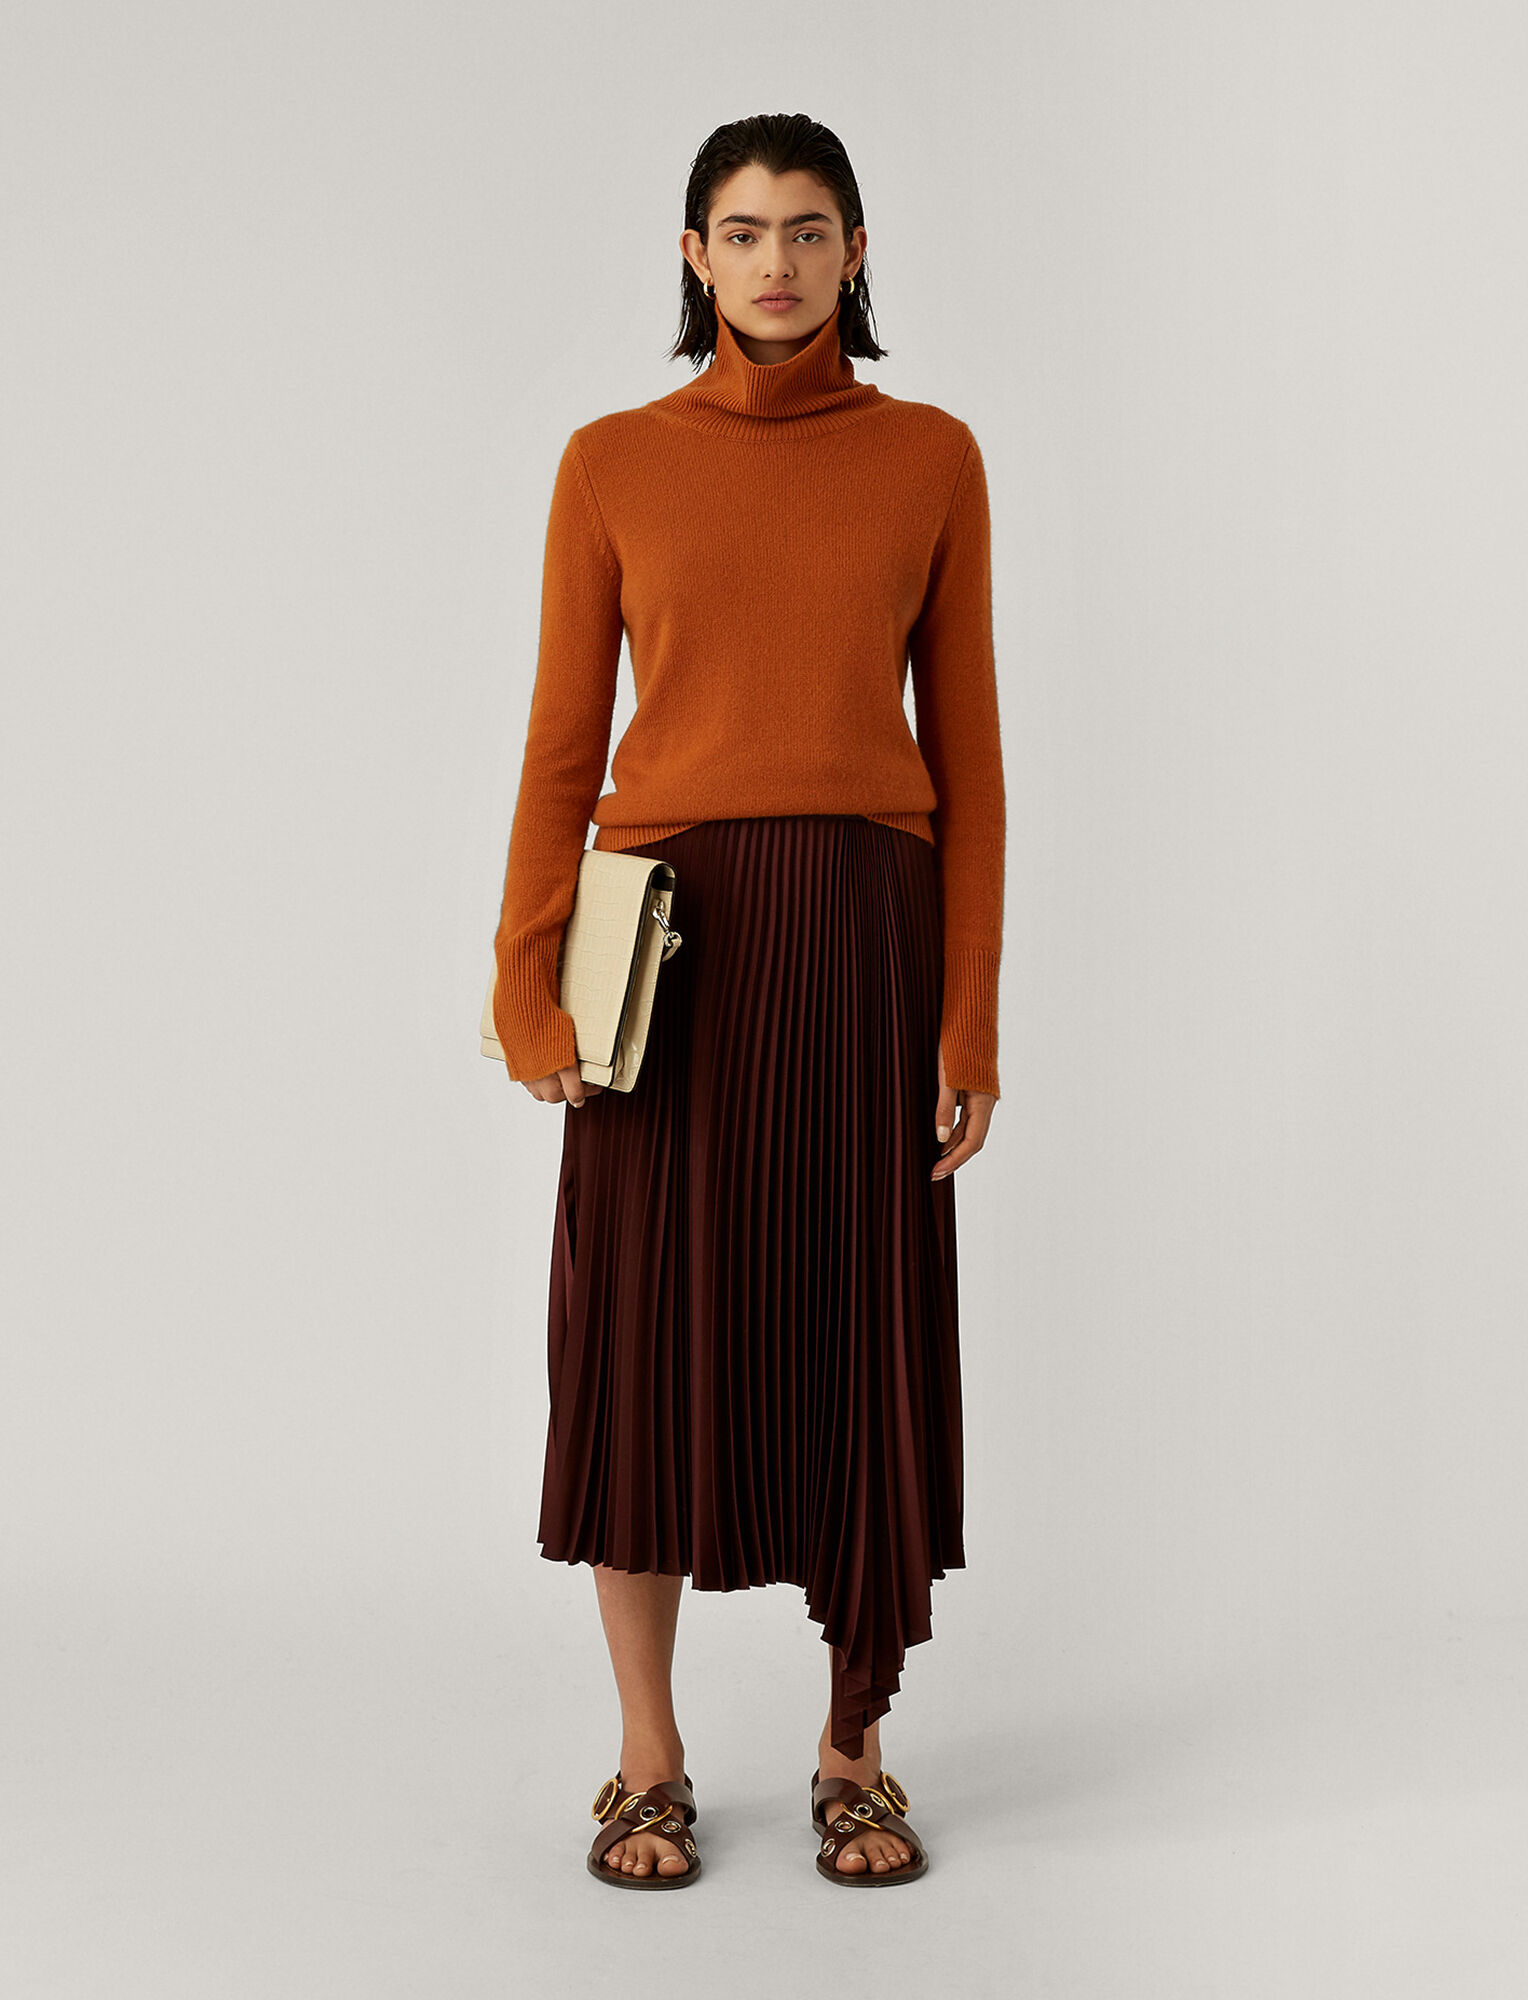 cashmere pullover and silk skirt